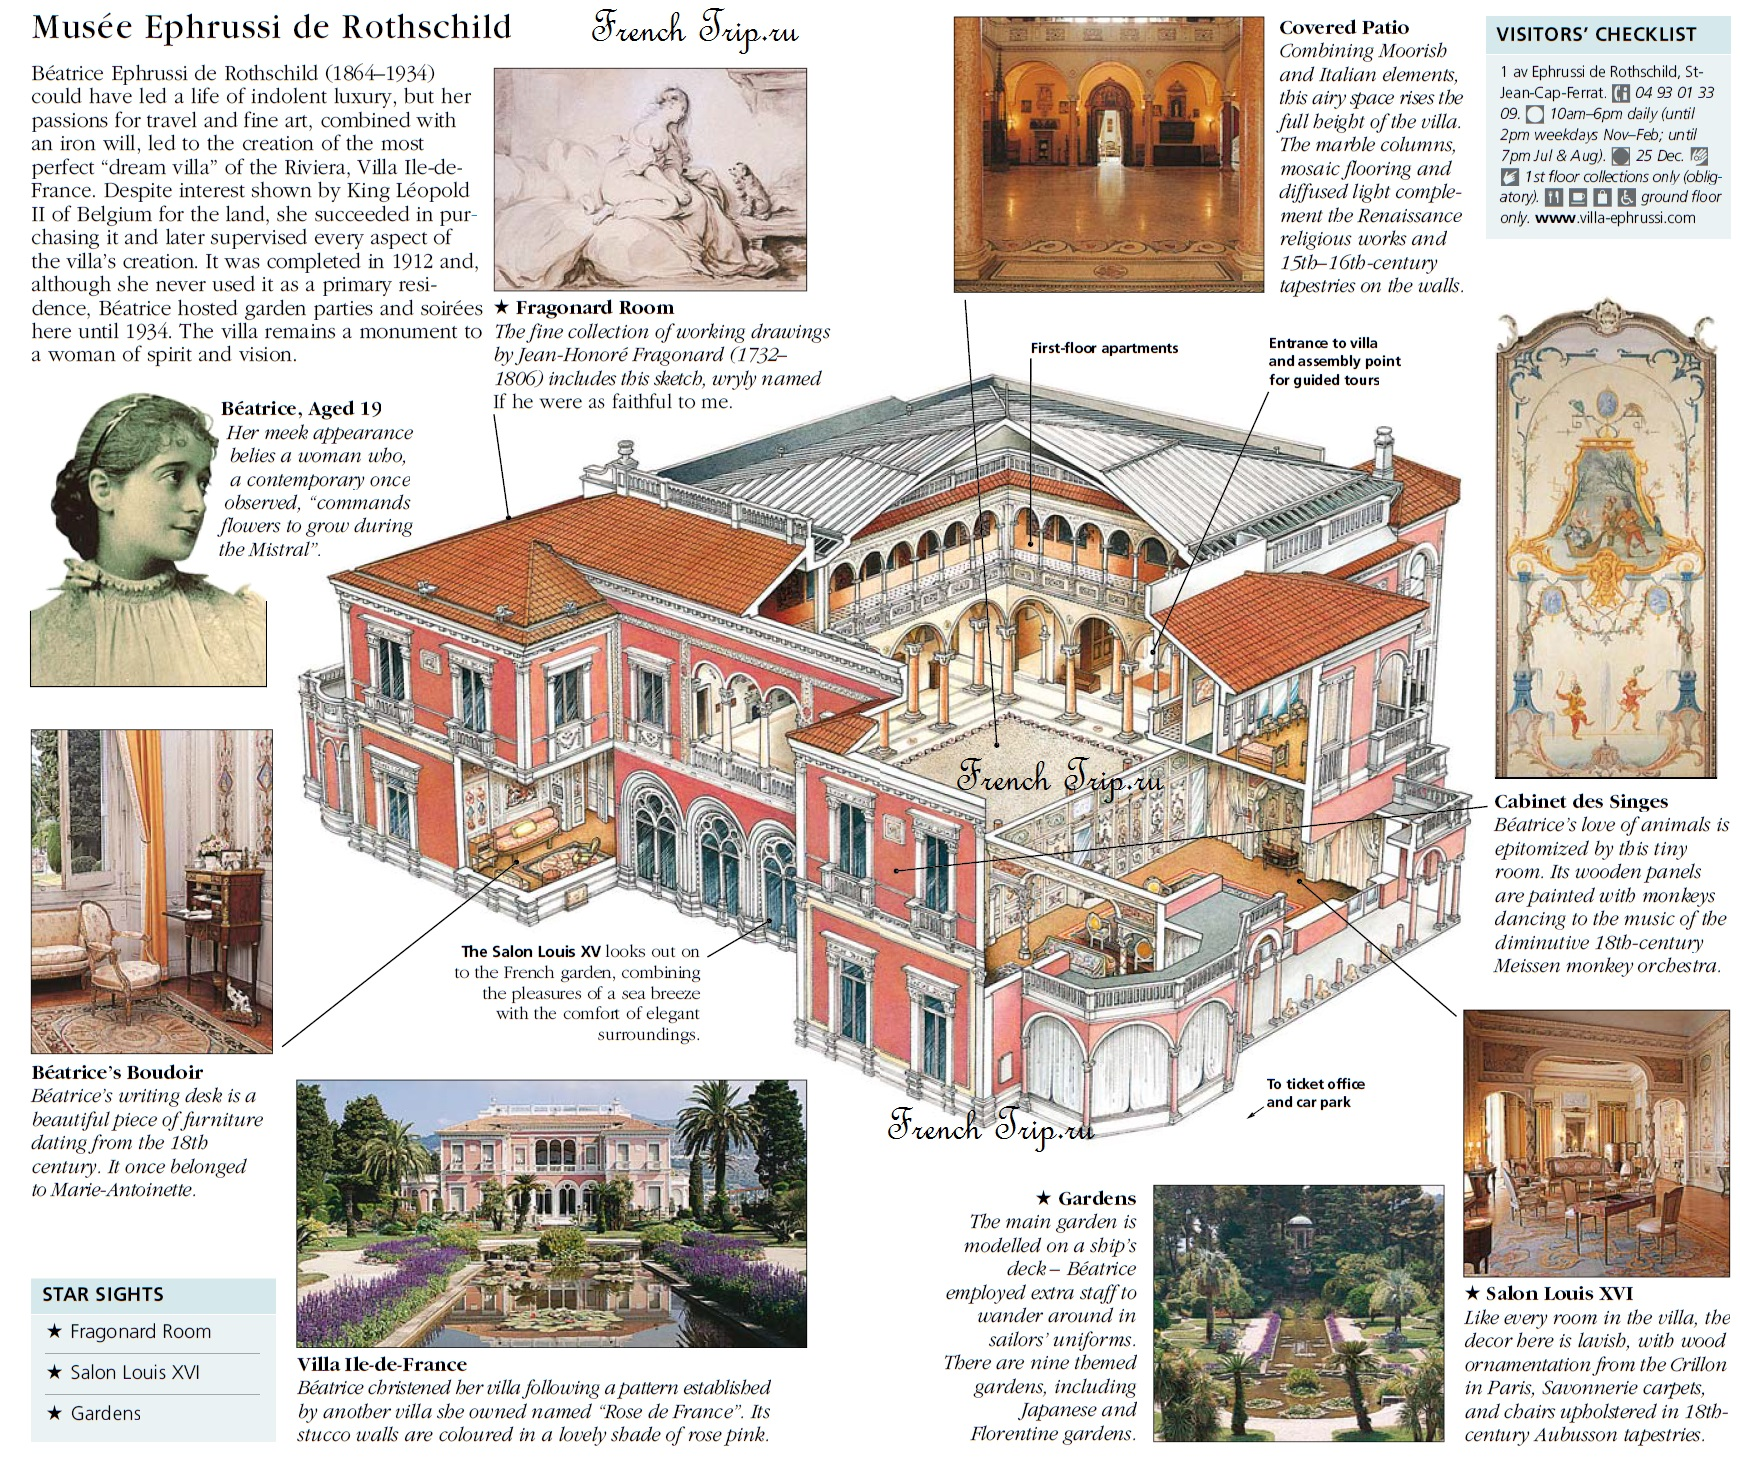 Map-DK-Nice-Musee-Ephrussi-de-Rotchild